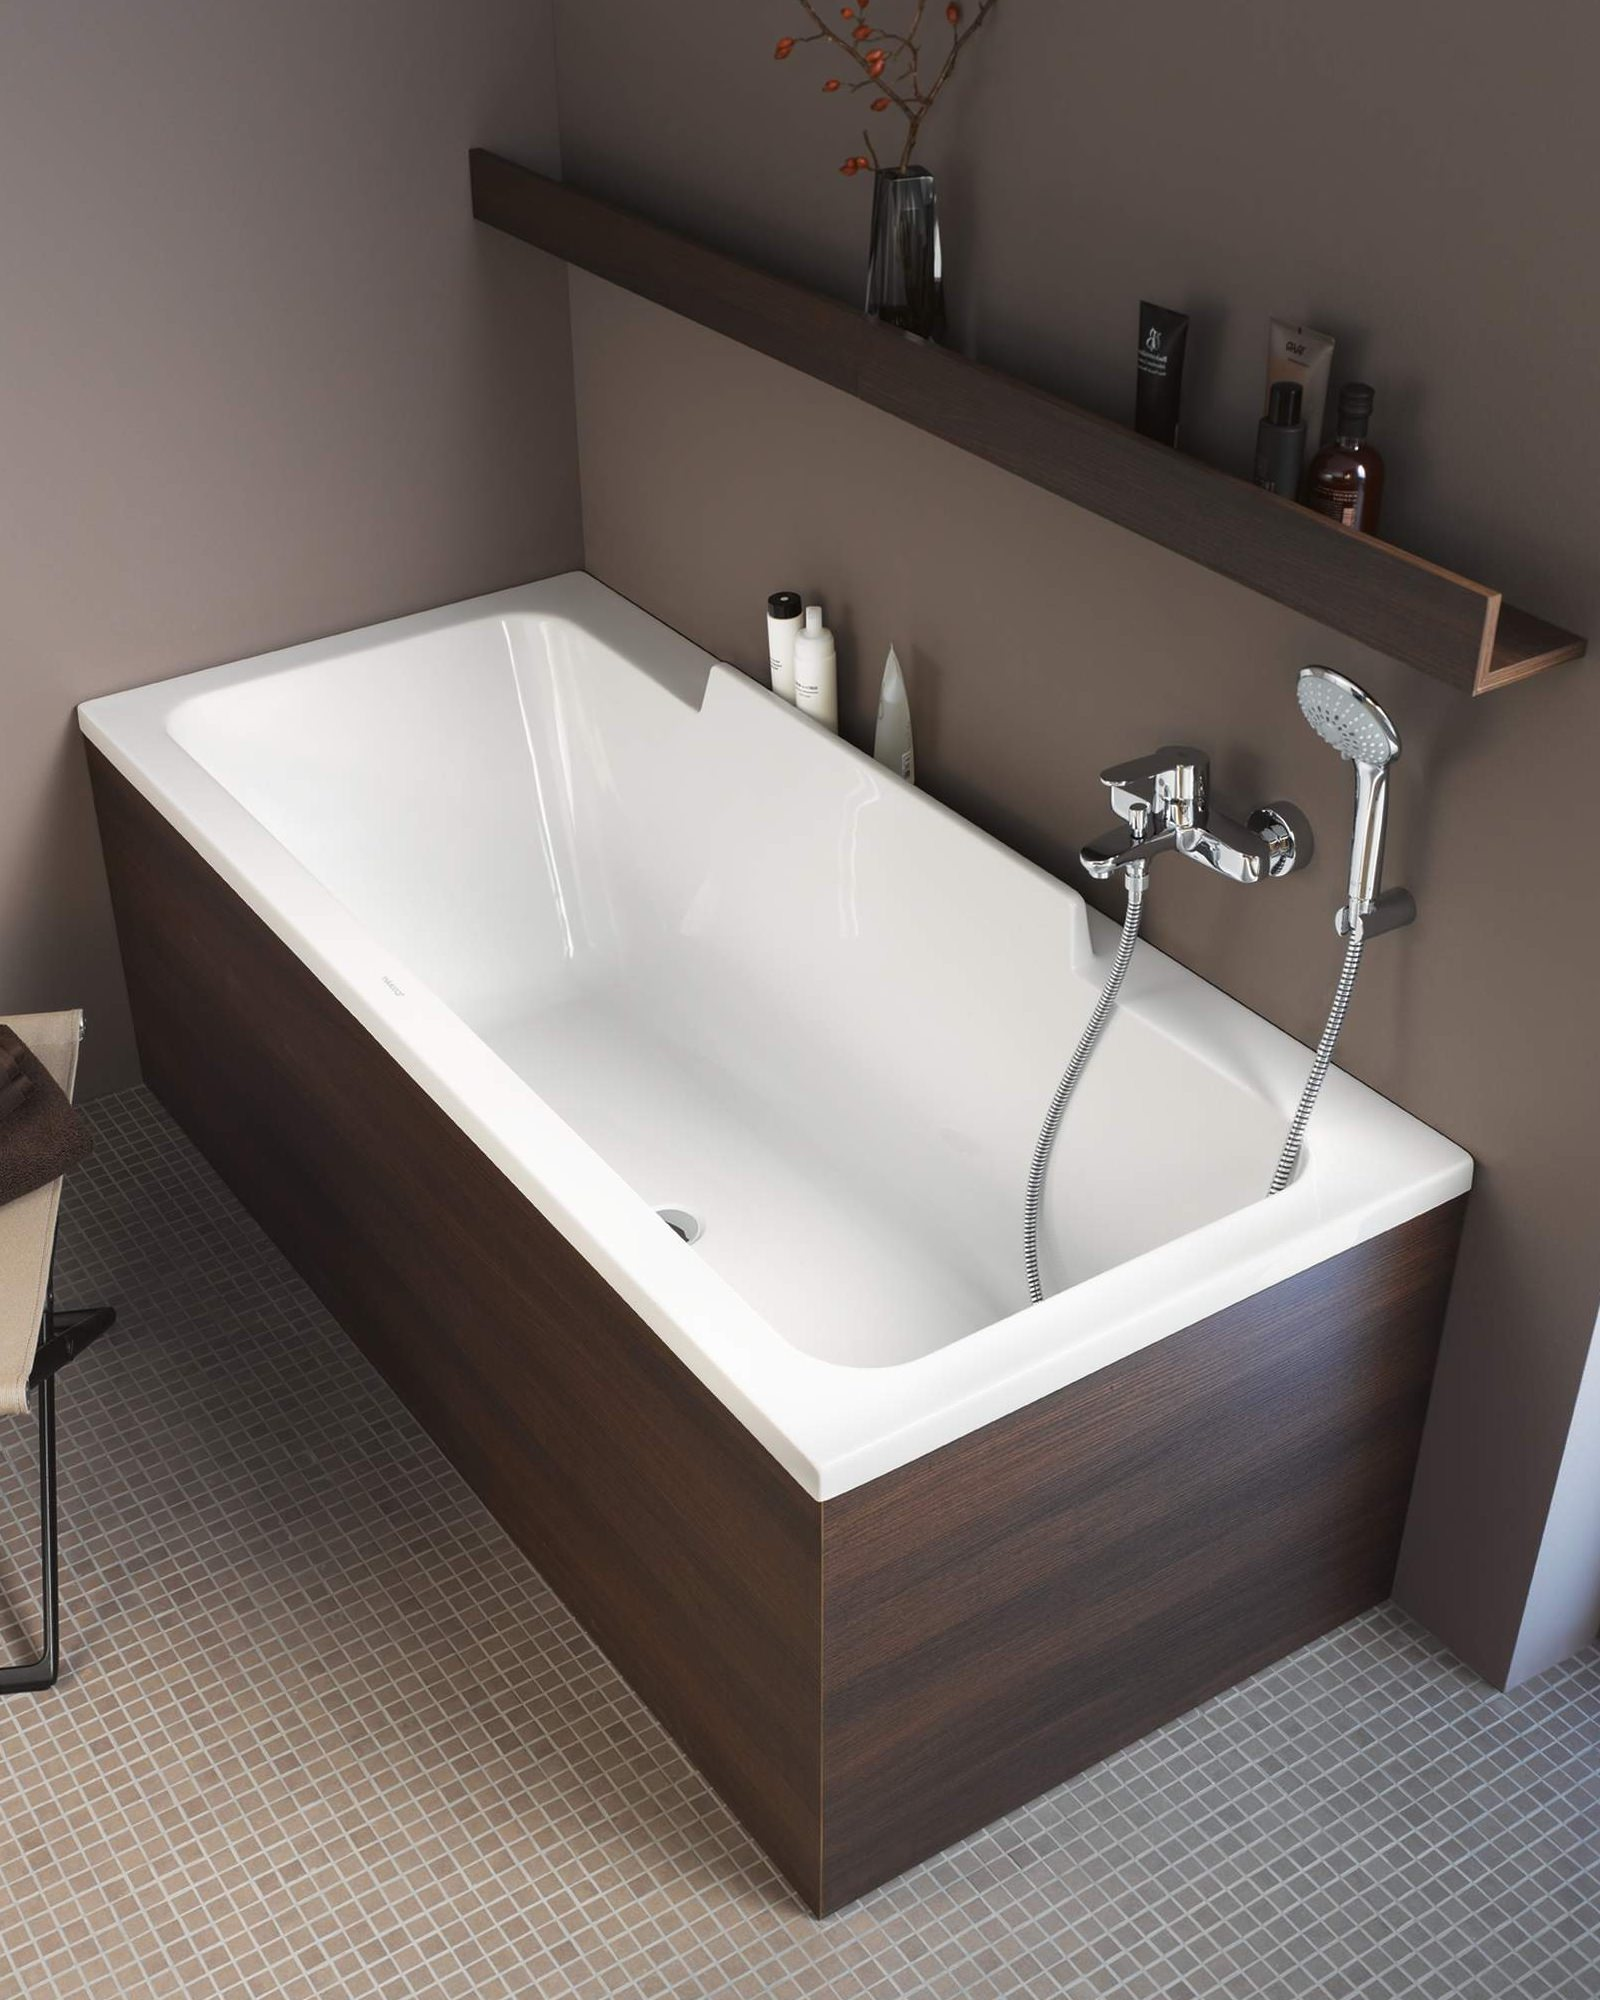 model bathtub models max obj series lxo interior lws lw lxl lwo fbx duravit tub bathroom